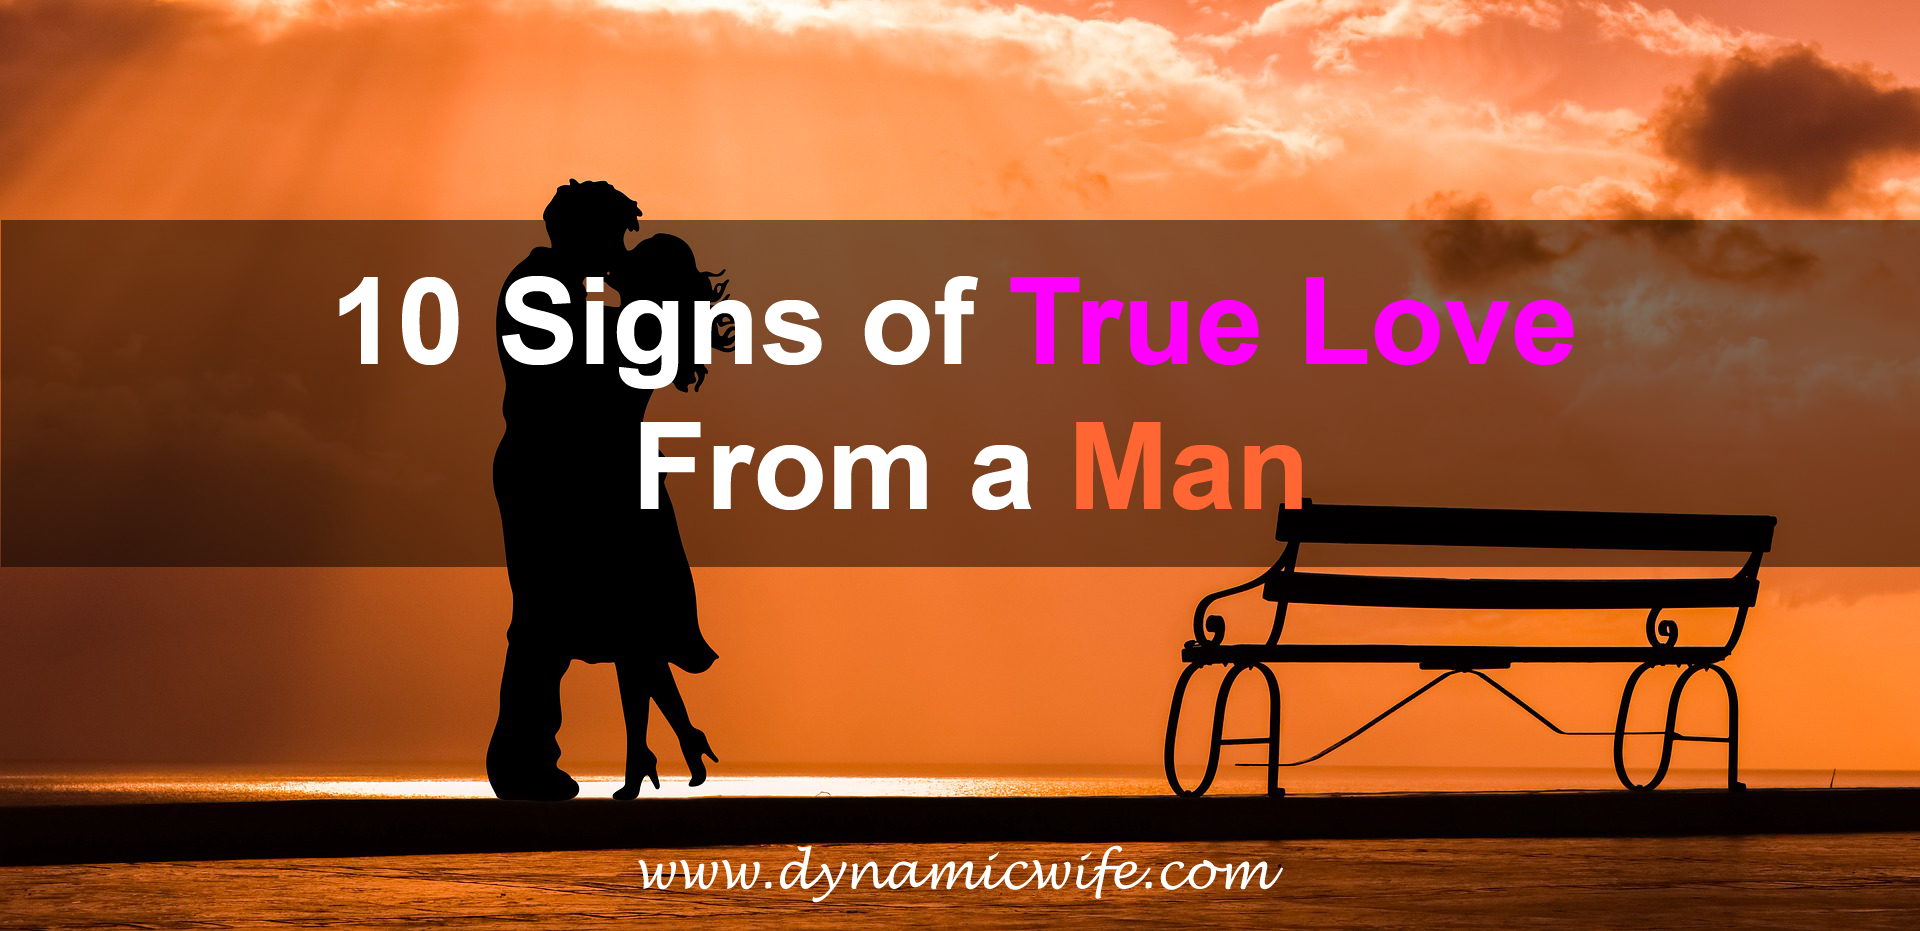 10-Signs-of-True-Love-From-a-Man.png